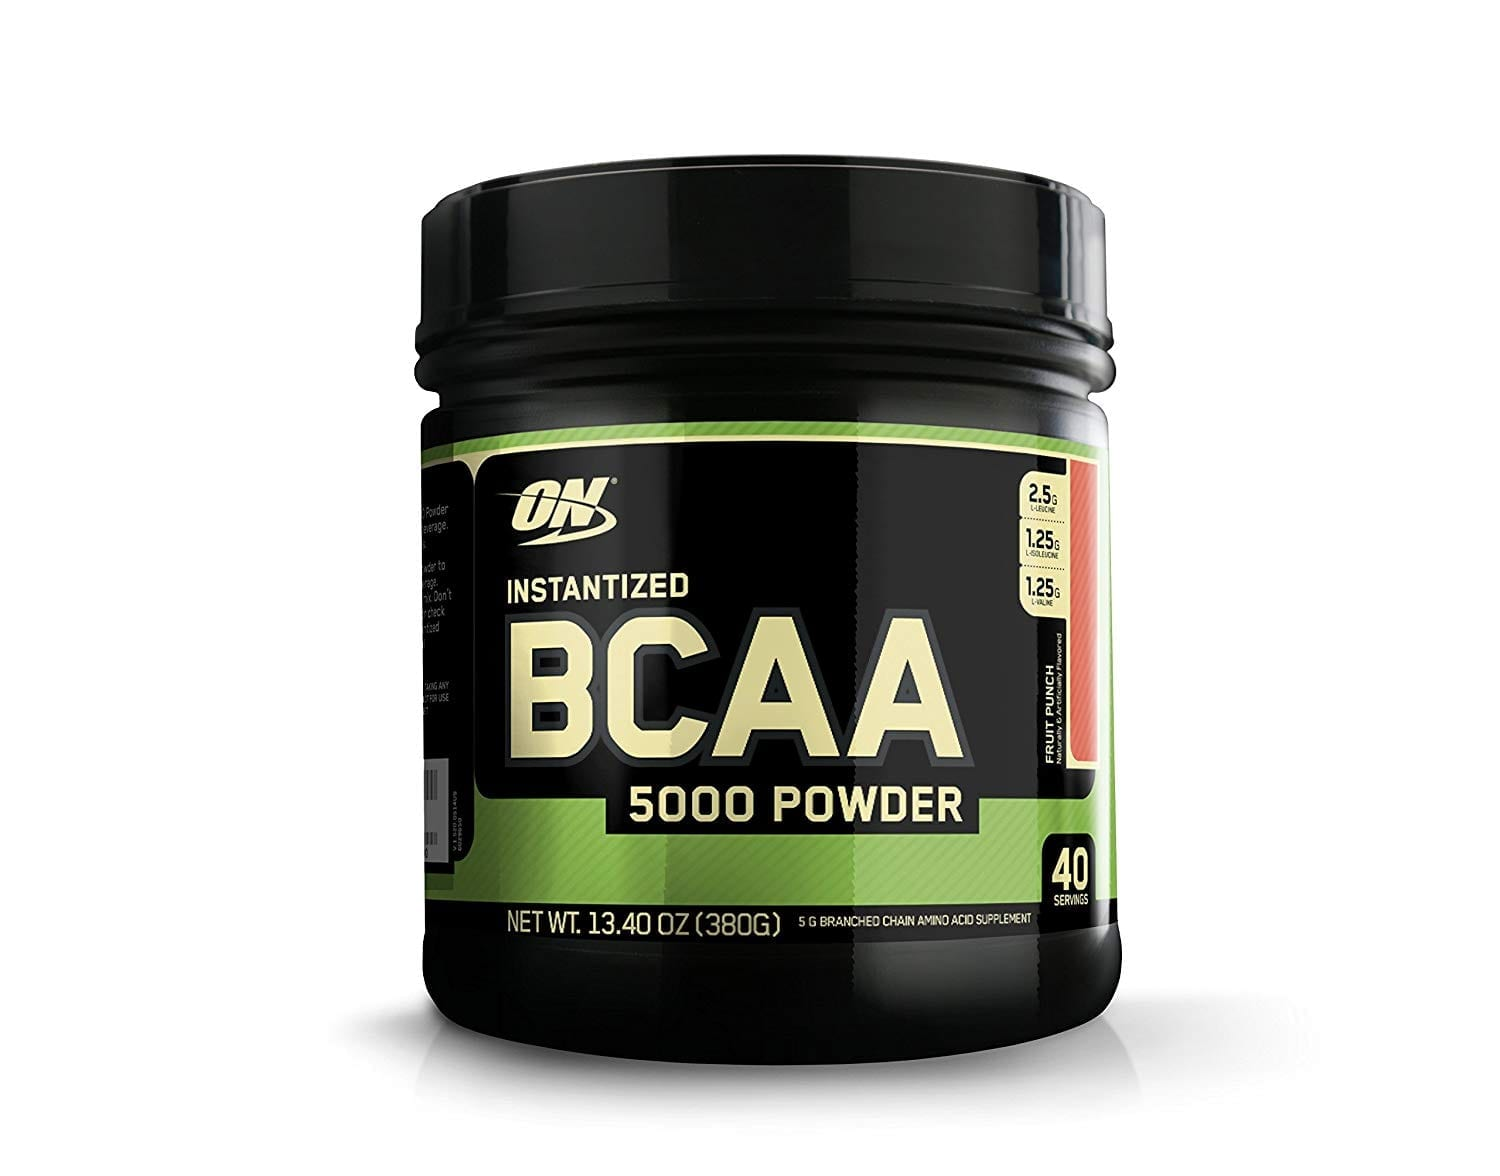 Optimum Nutrition BCAA Review – Is It Worth Buying?